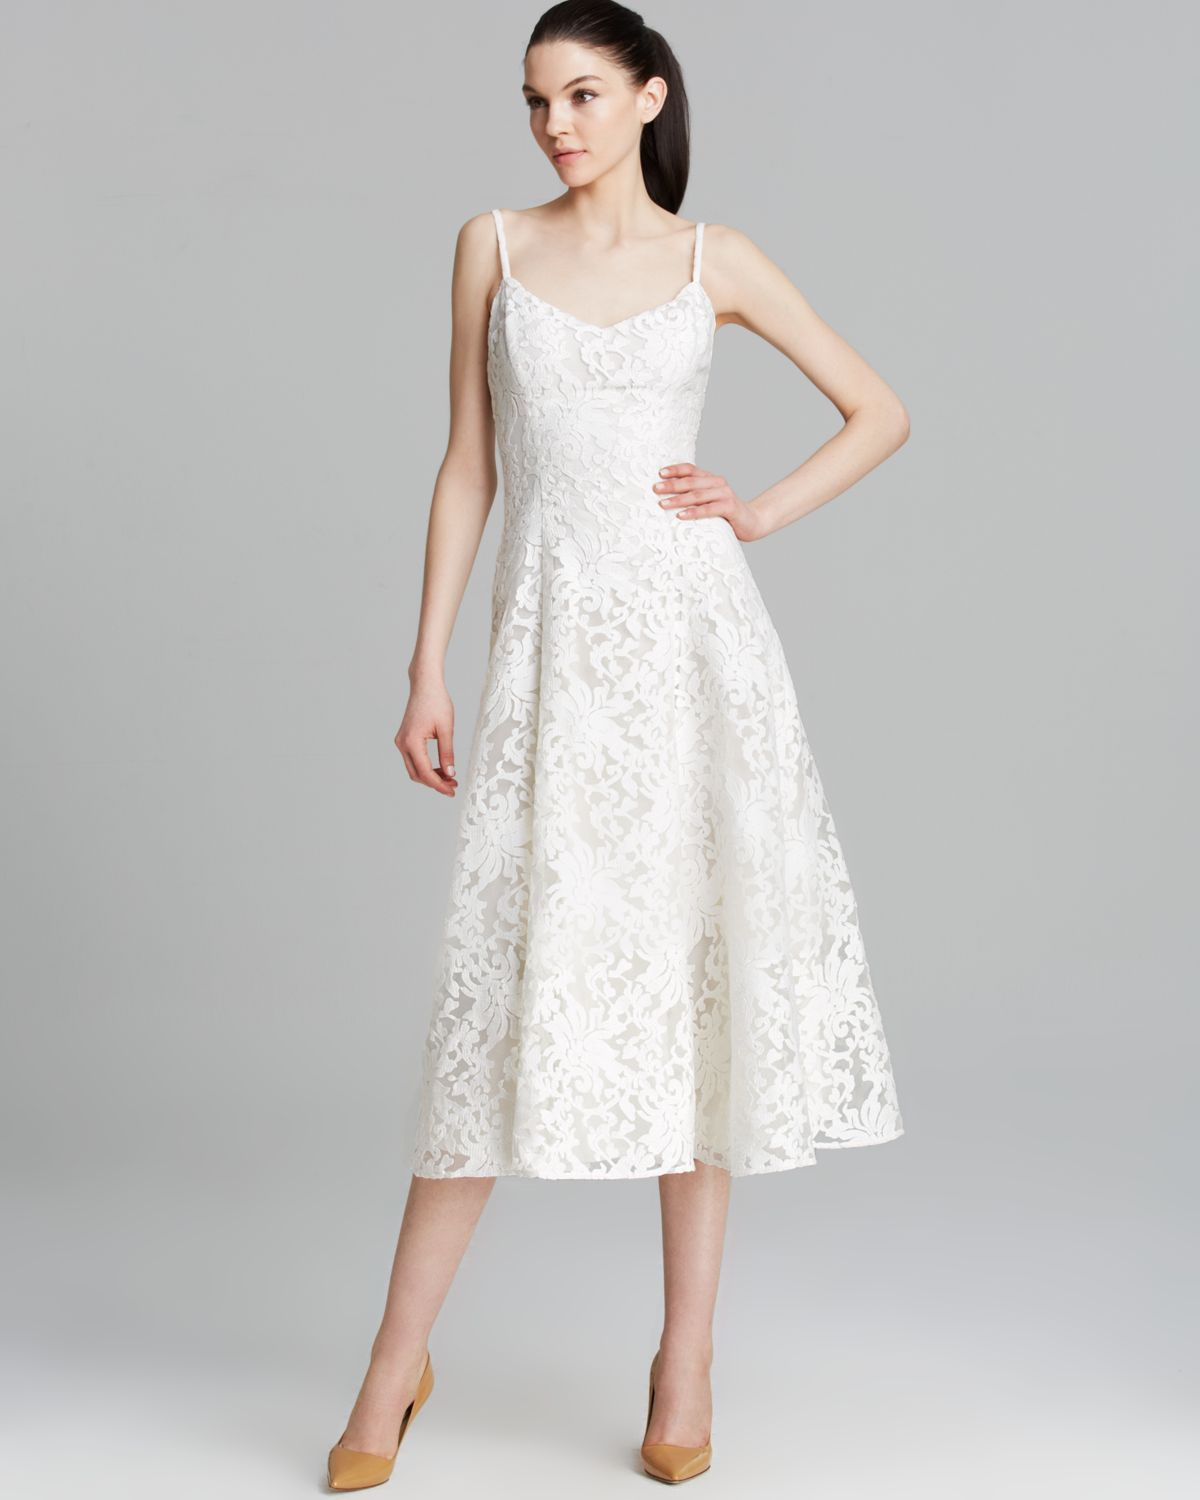 It's easy to find a Women's White Lace Dress, Girls White Lace Dress and more today at Macy's. Macy's Presents: The Edit - A curated mix of fashion and inspiration Check It Out Free Shipping with $49 purchase + Free Store Pickup.